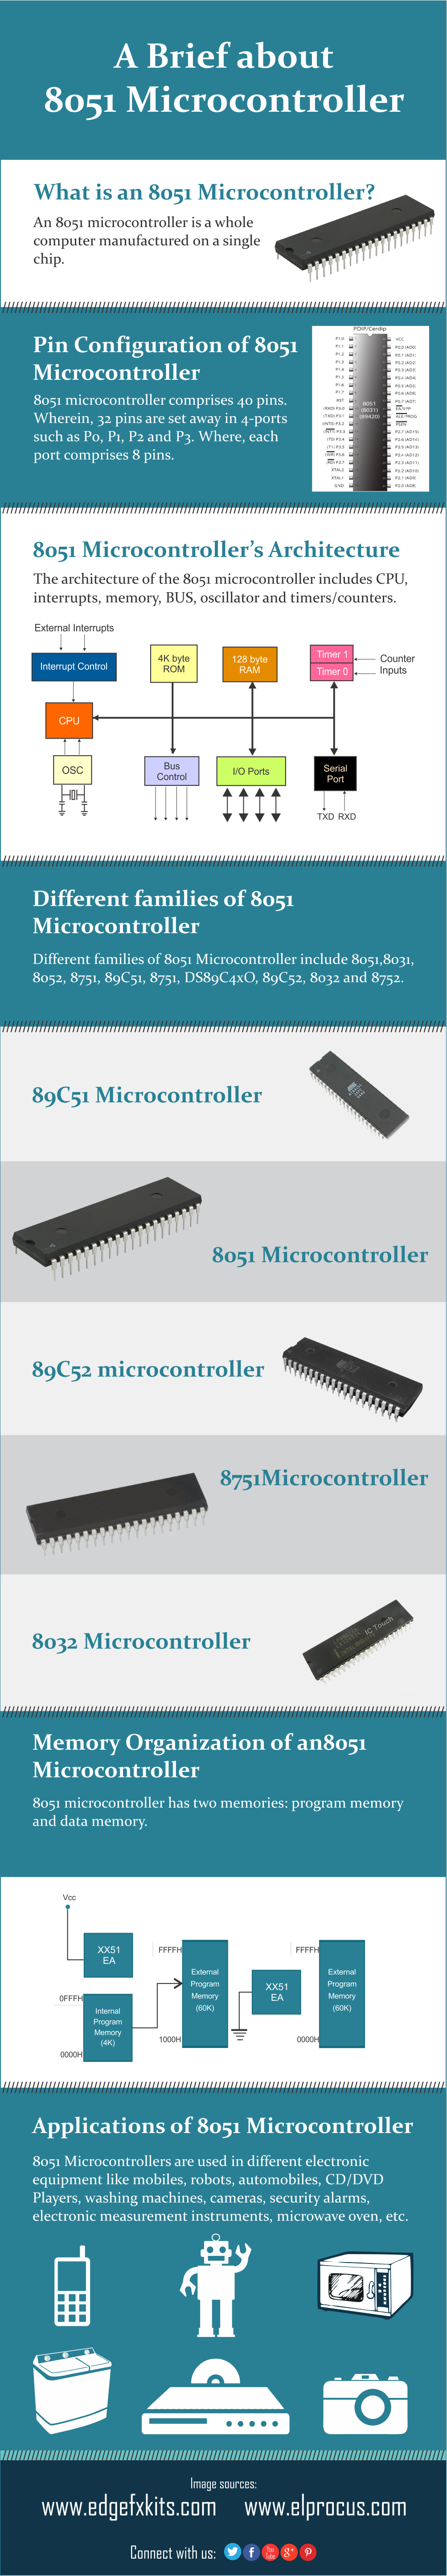 A Brief about 8051 Microcontroller